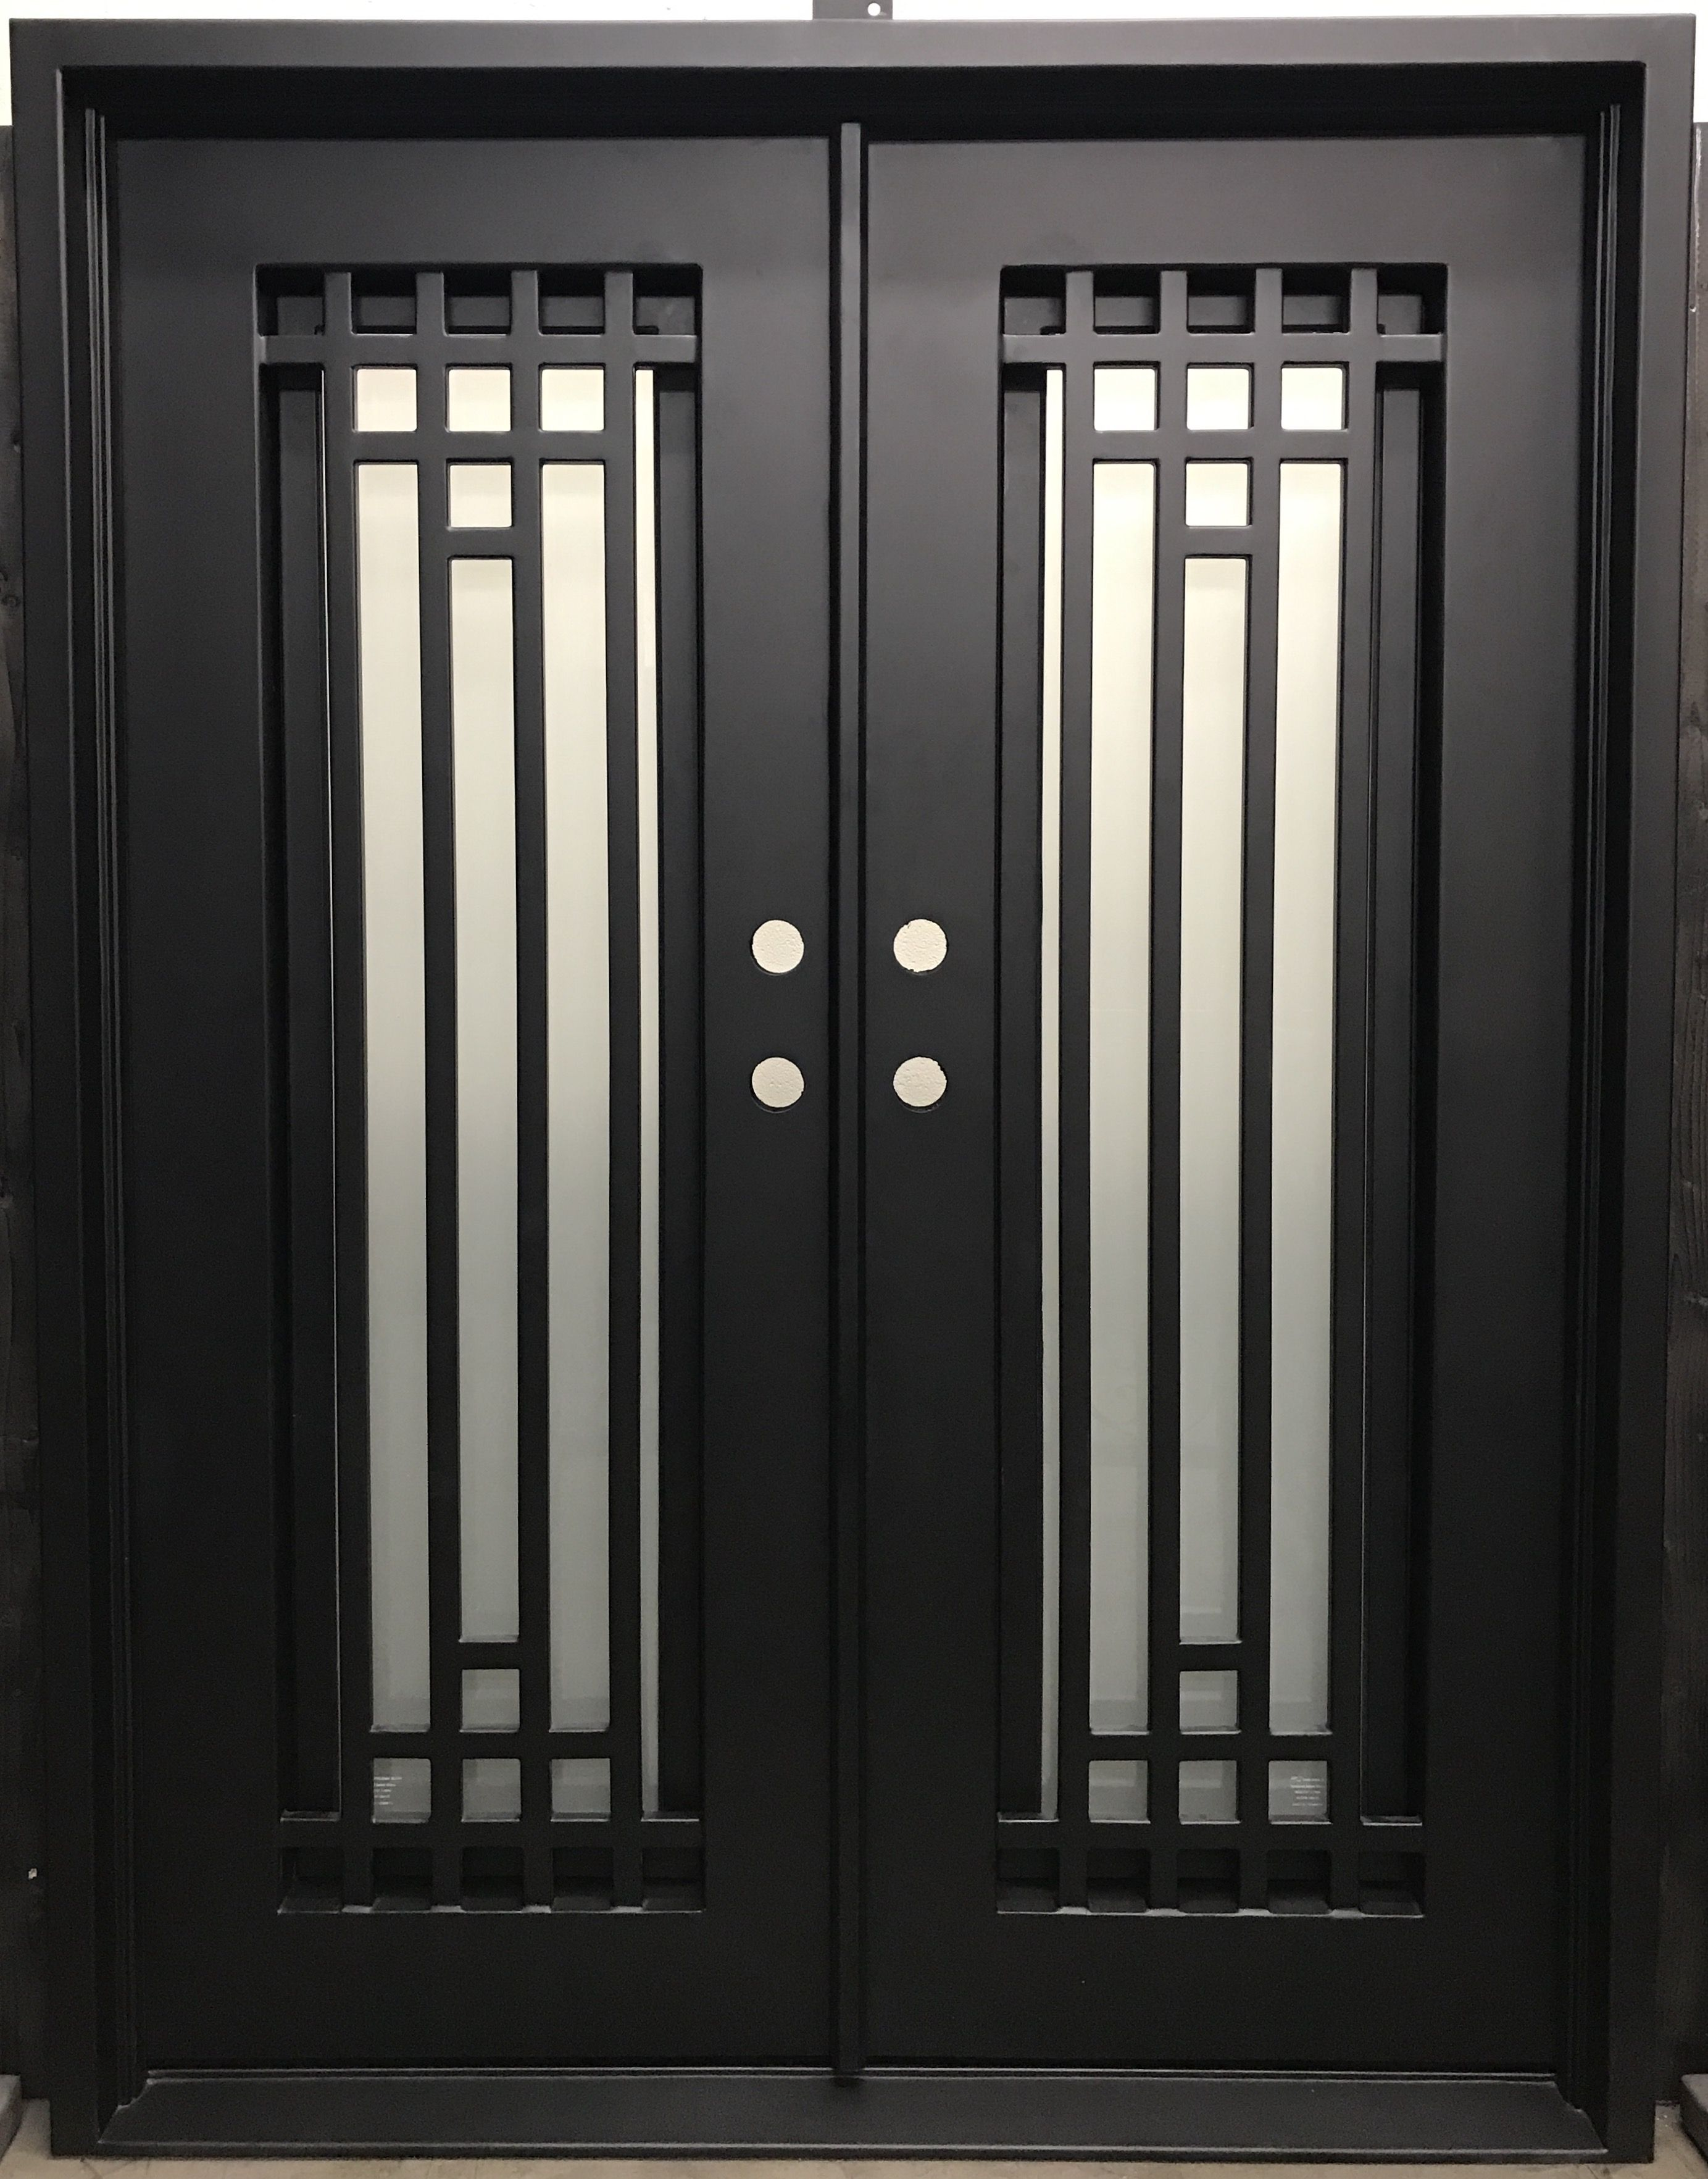 Modern Iron Doors Ideas To Make Your Entrance Look Beautiful Con